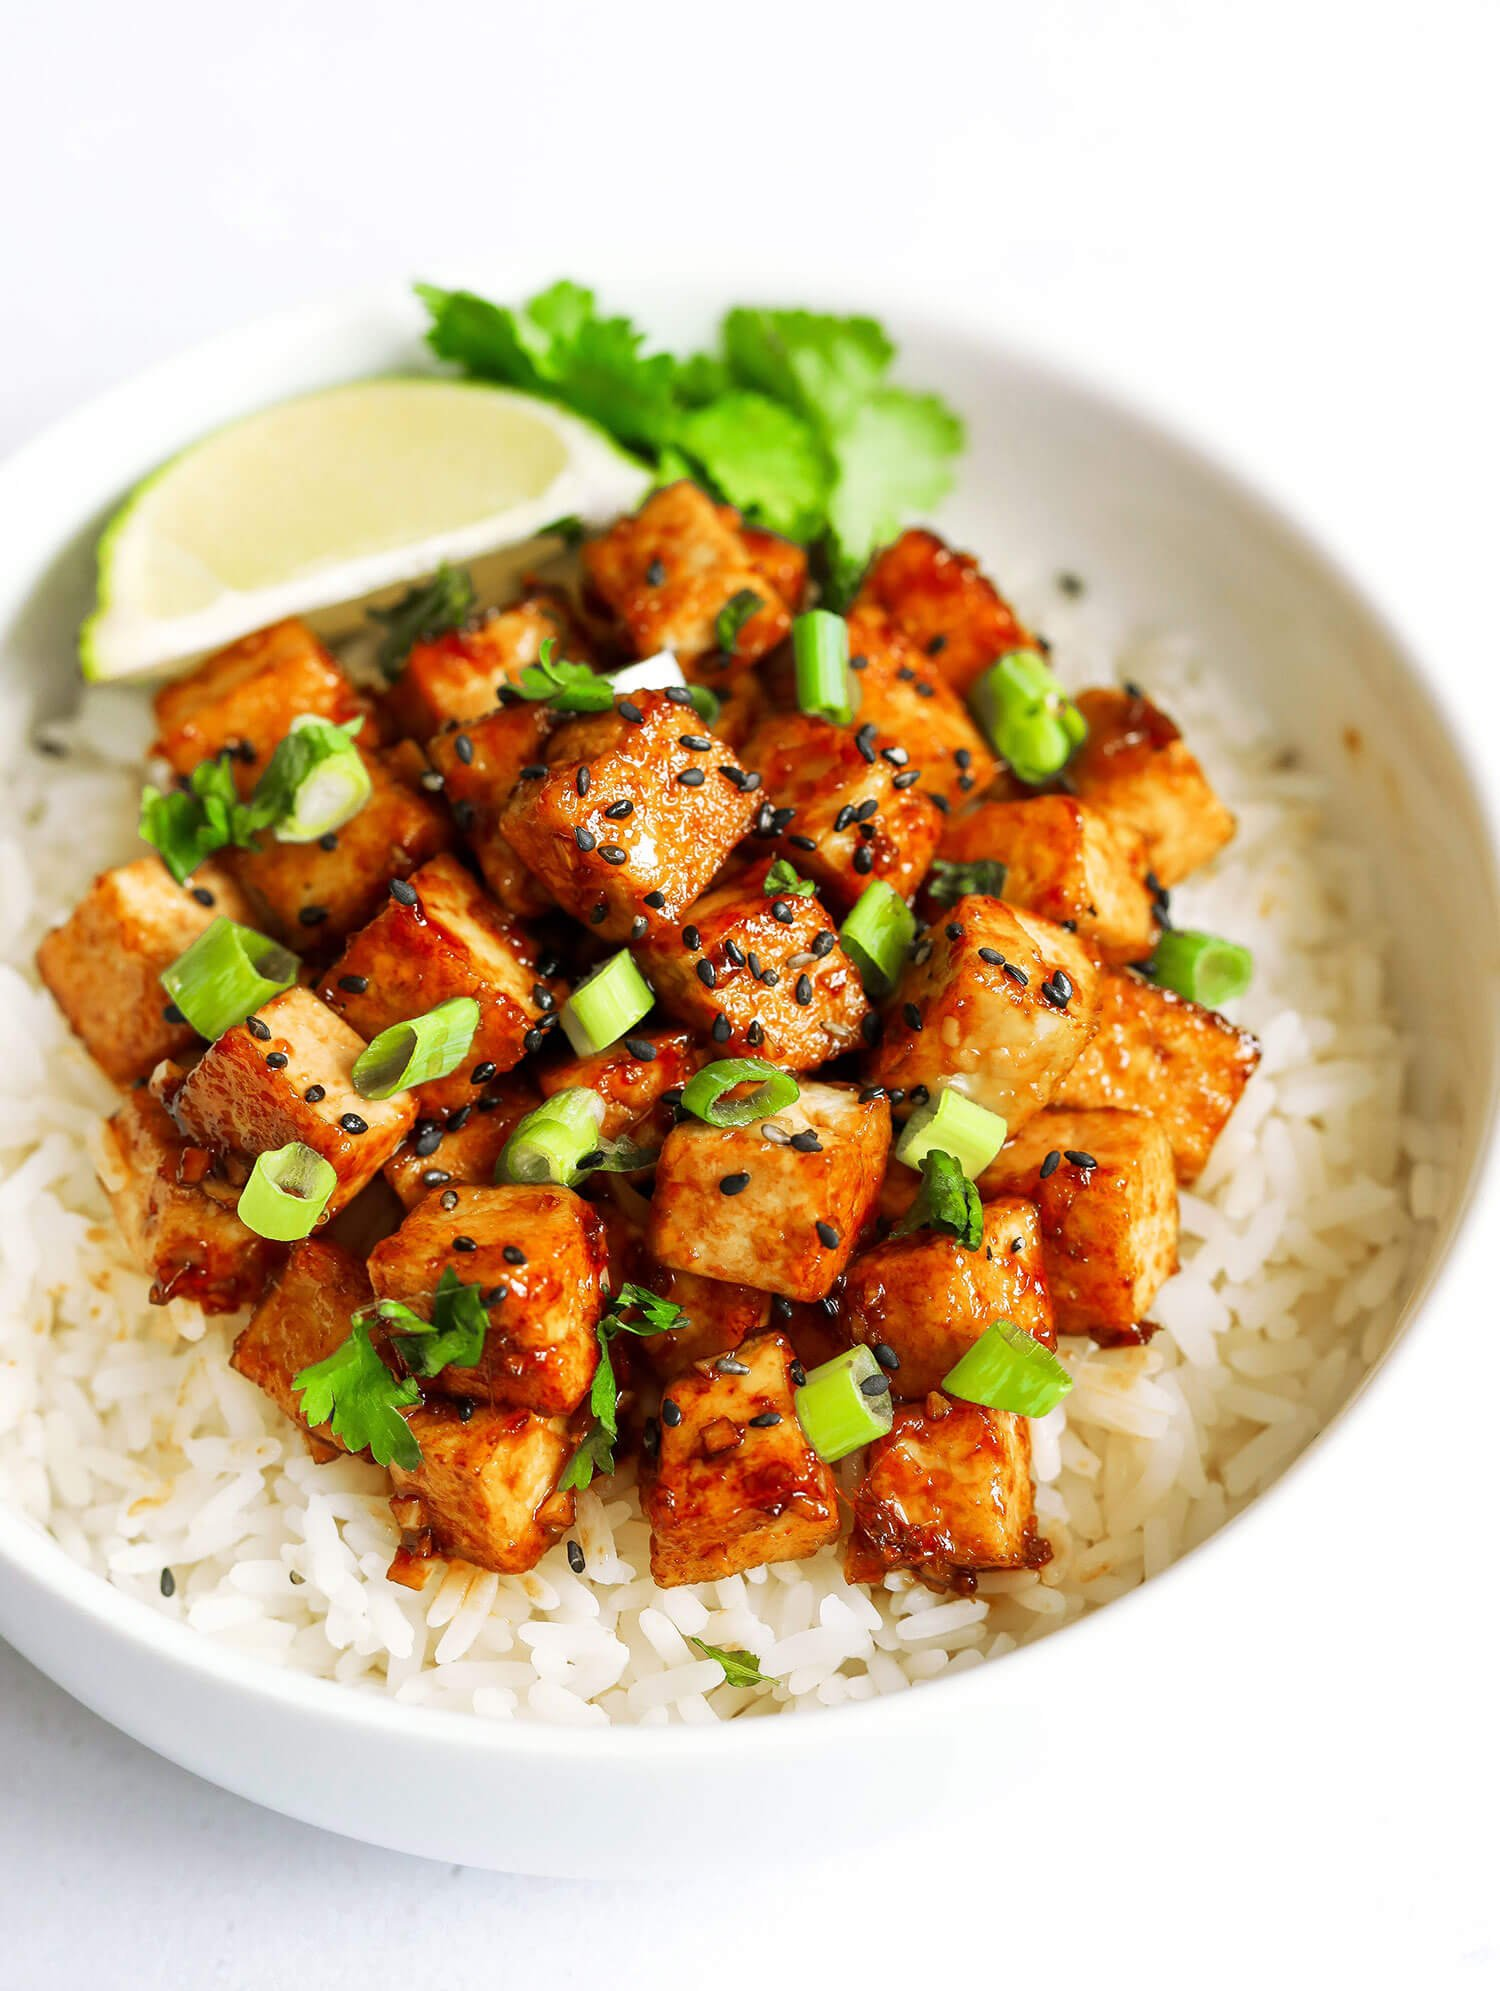 Pan-fried Maple Soy Tofu